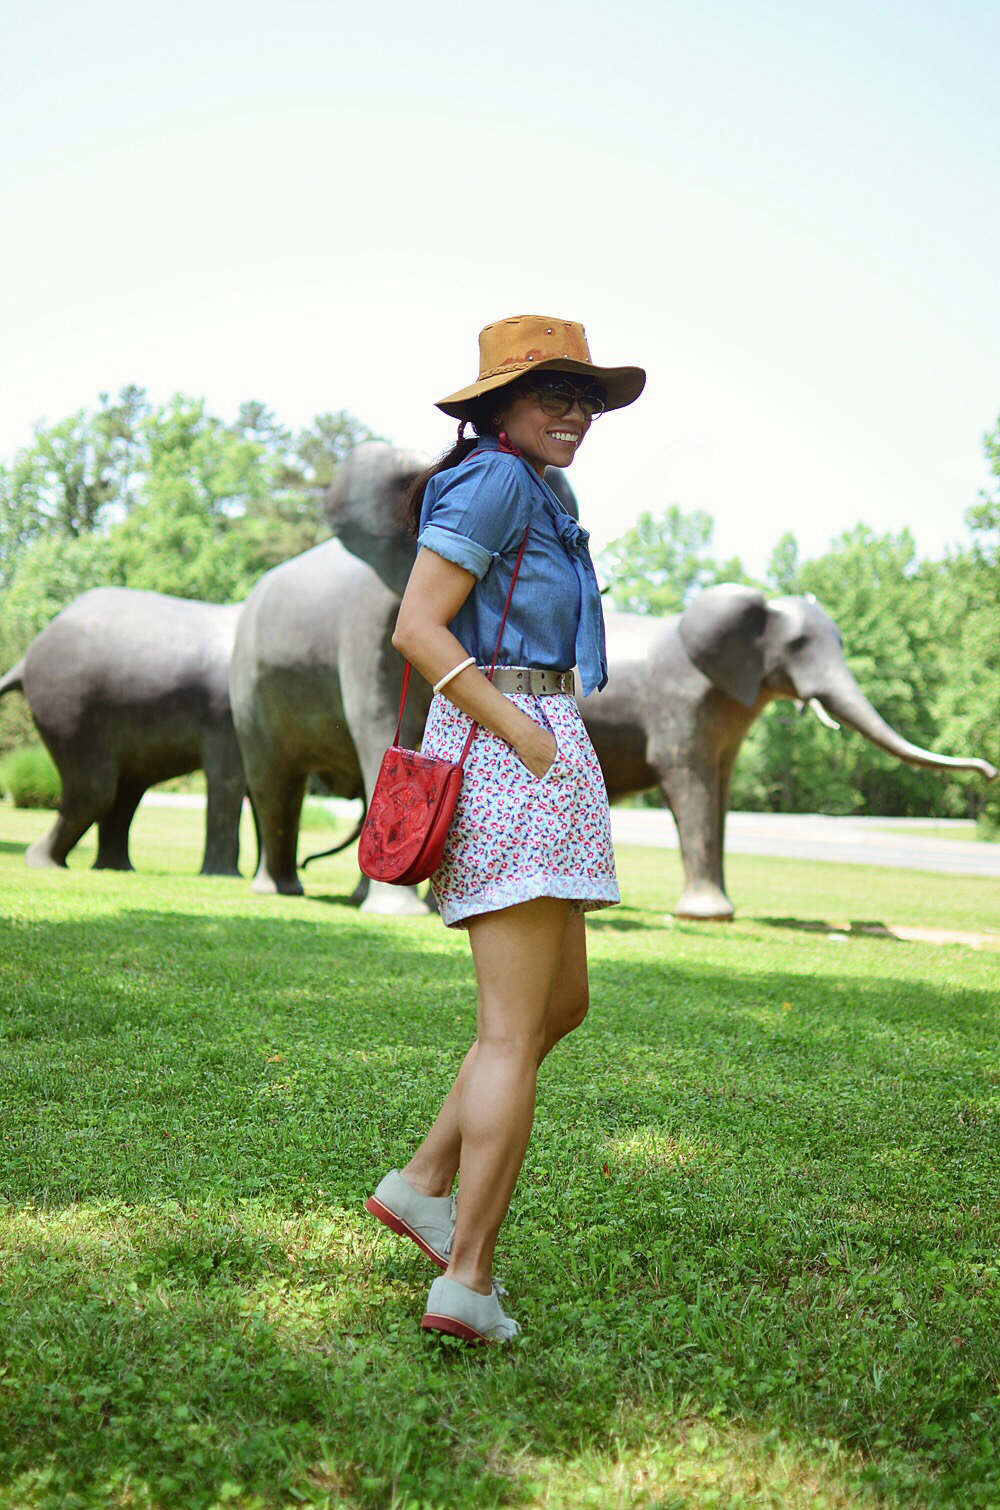 Safari outfit street style